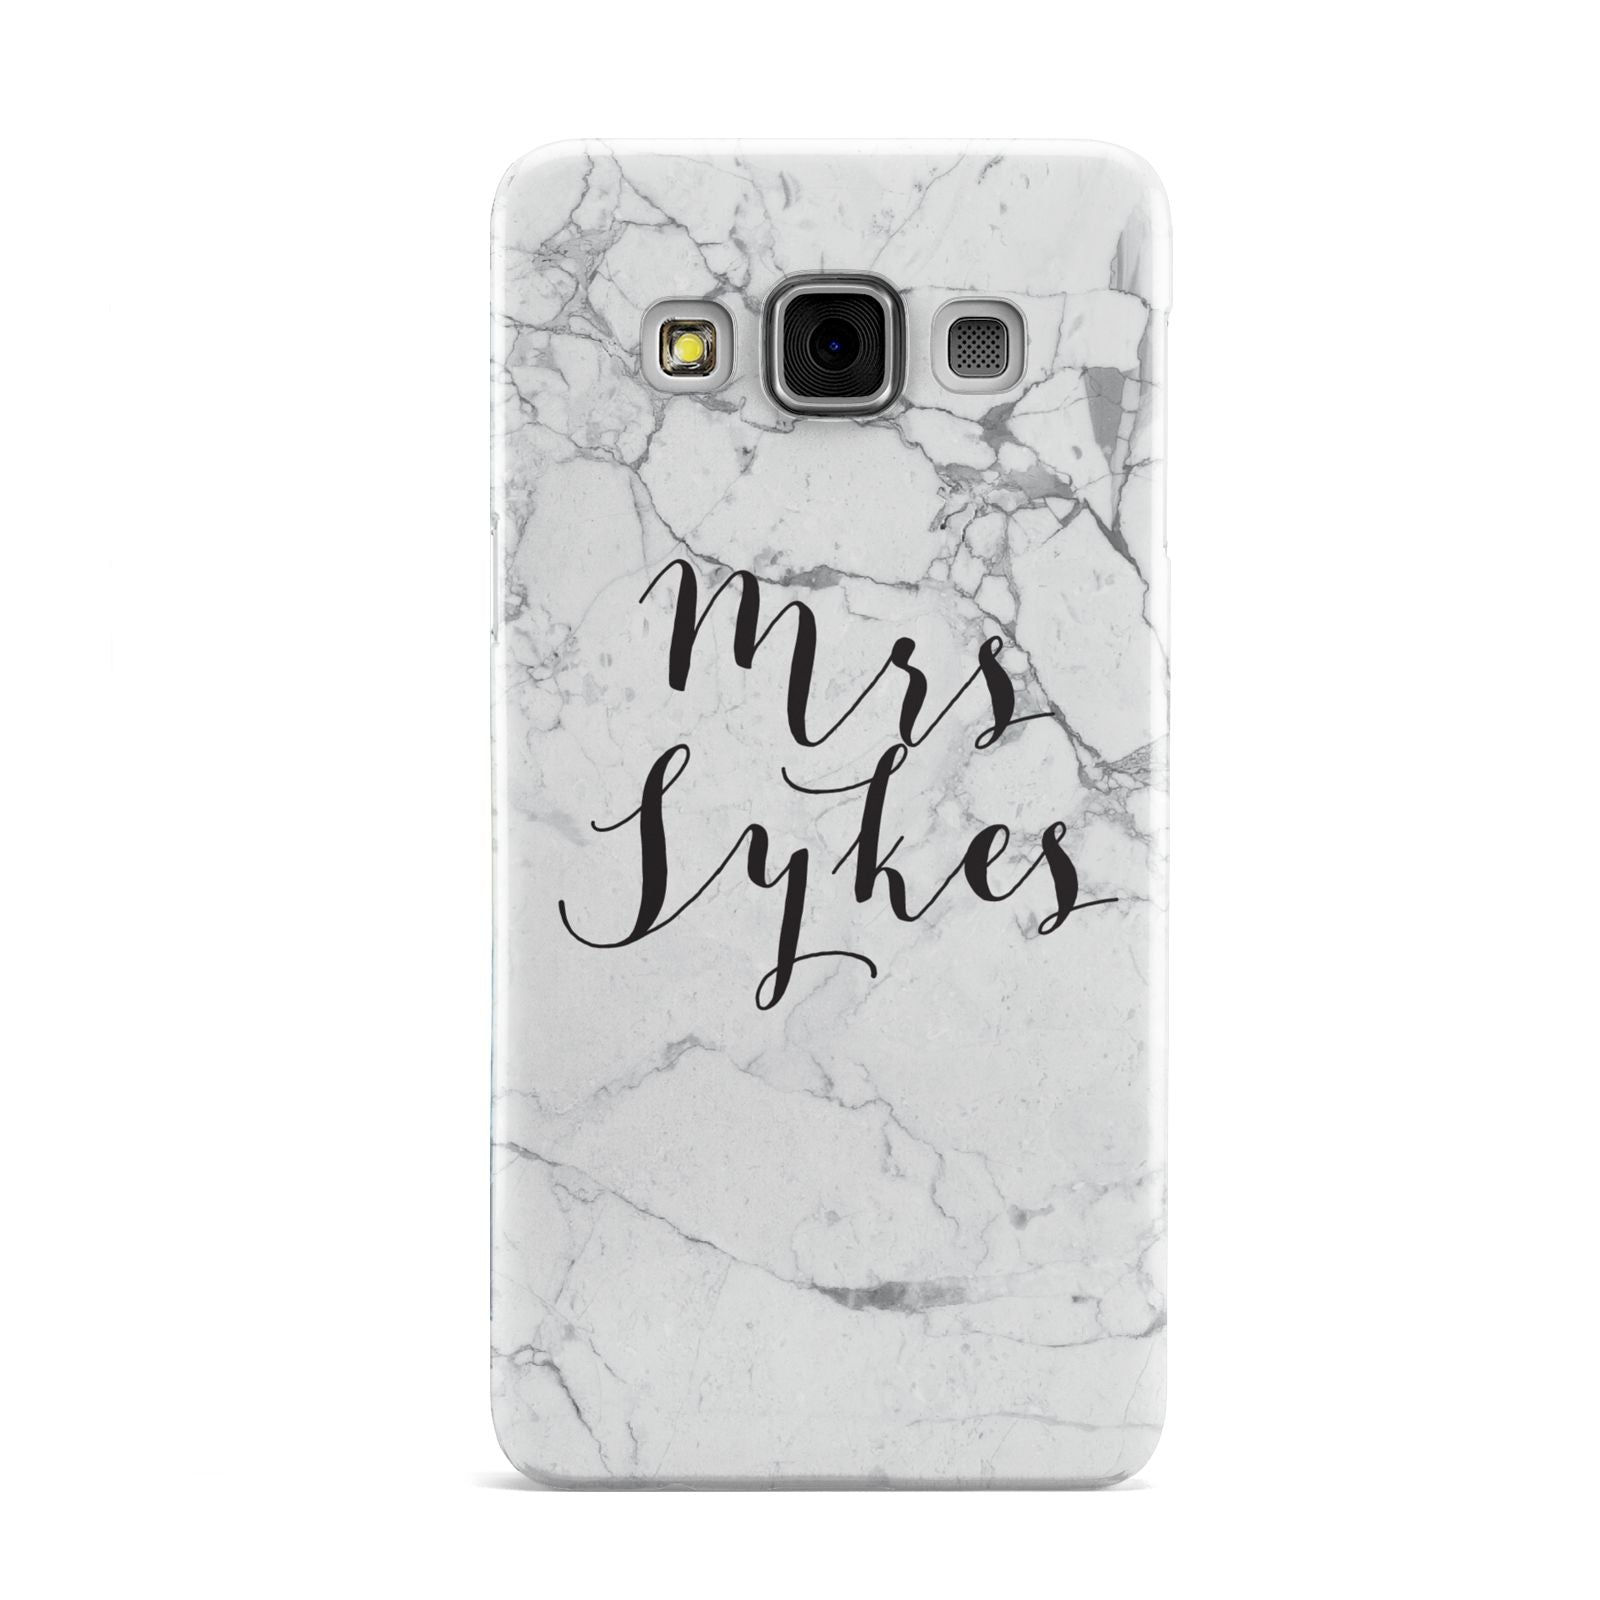 Surname Personalised Marble Samsung Galaxy A3 Case